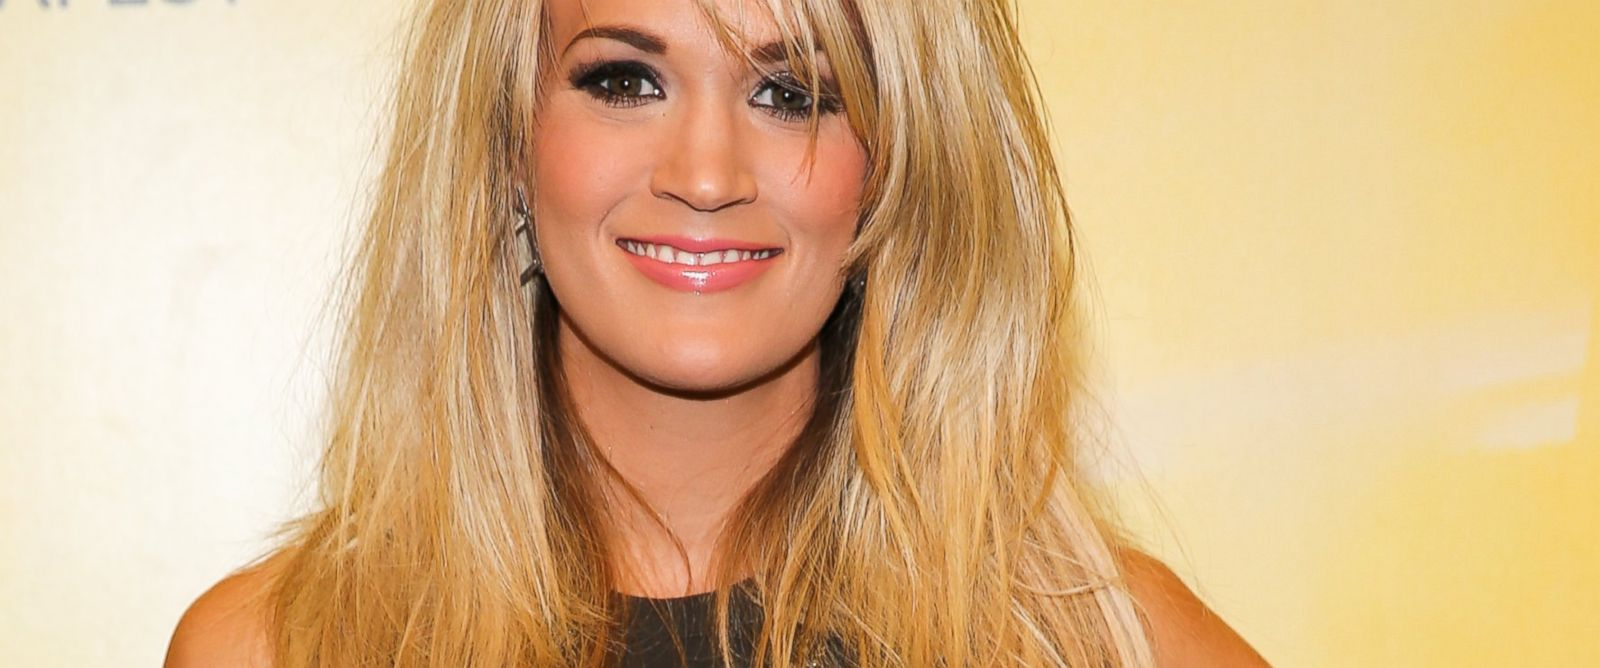 Carrie Underwood Explains How Her Son and Dogs Got Locked in Car - ABC ...